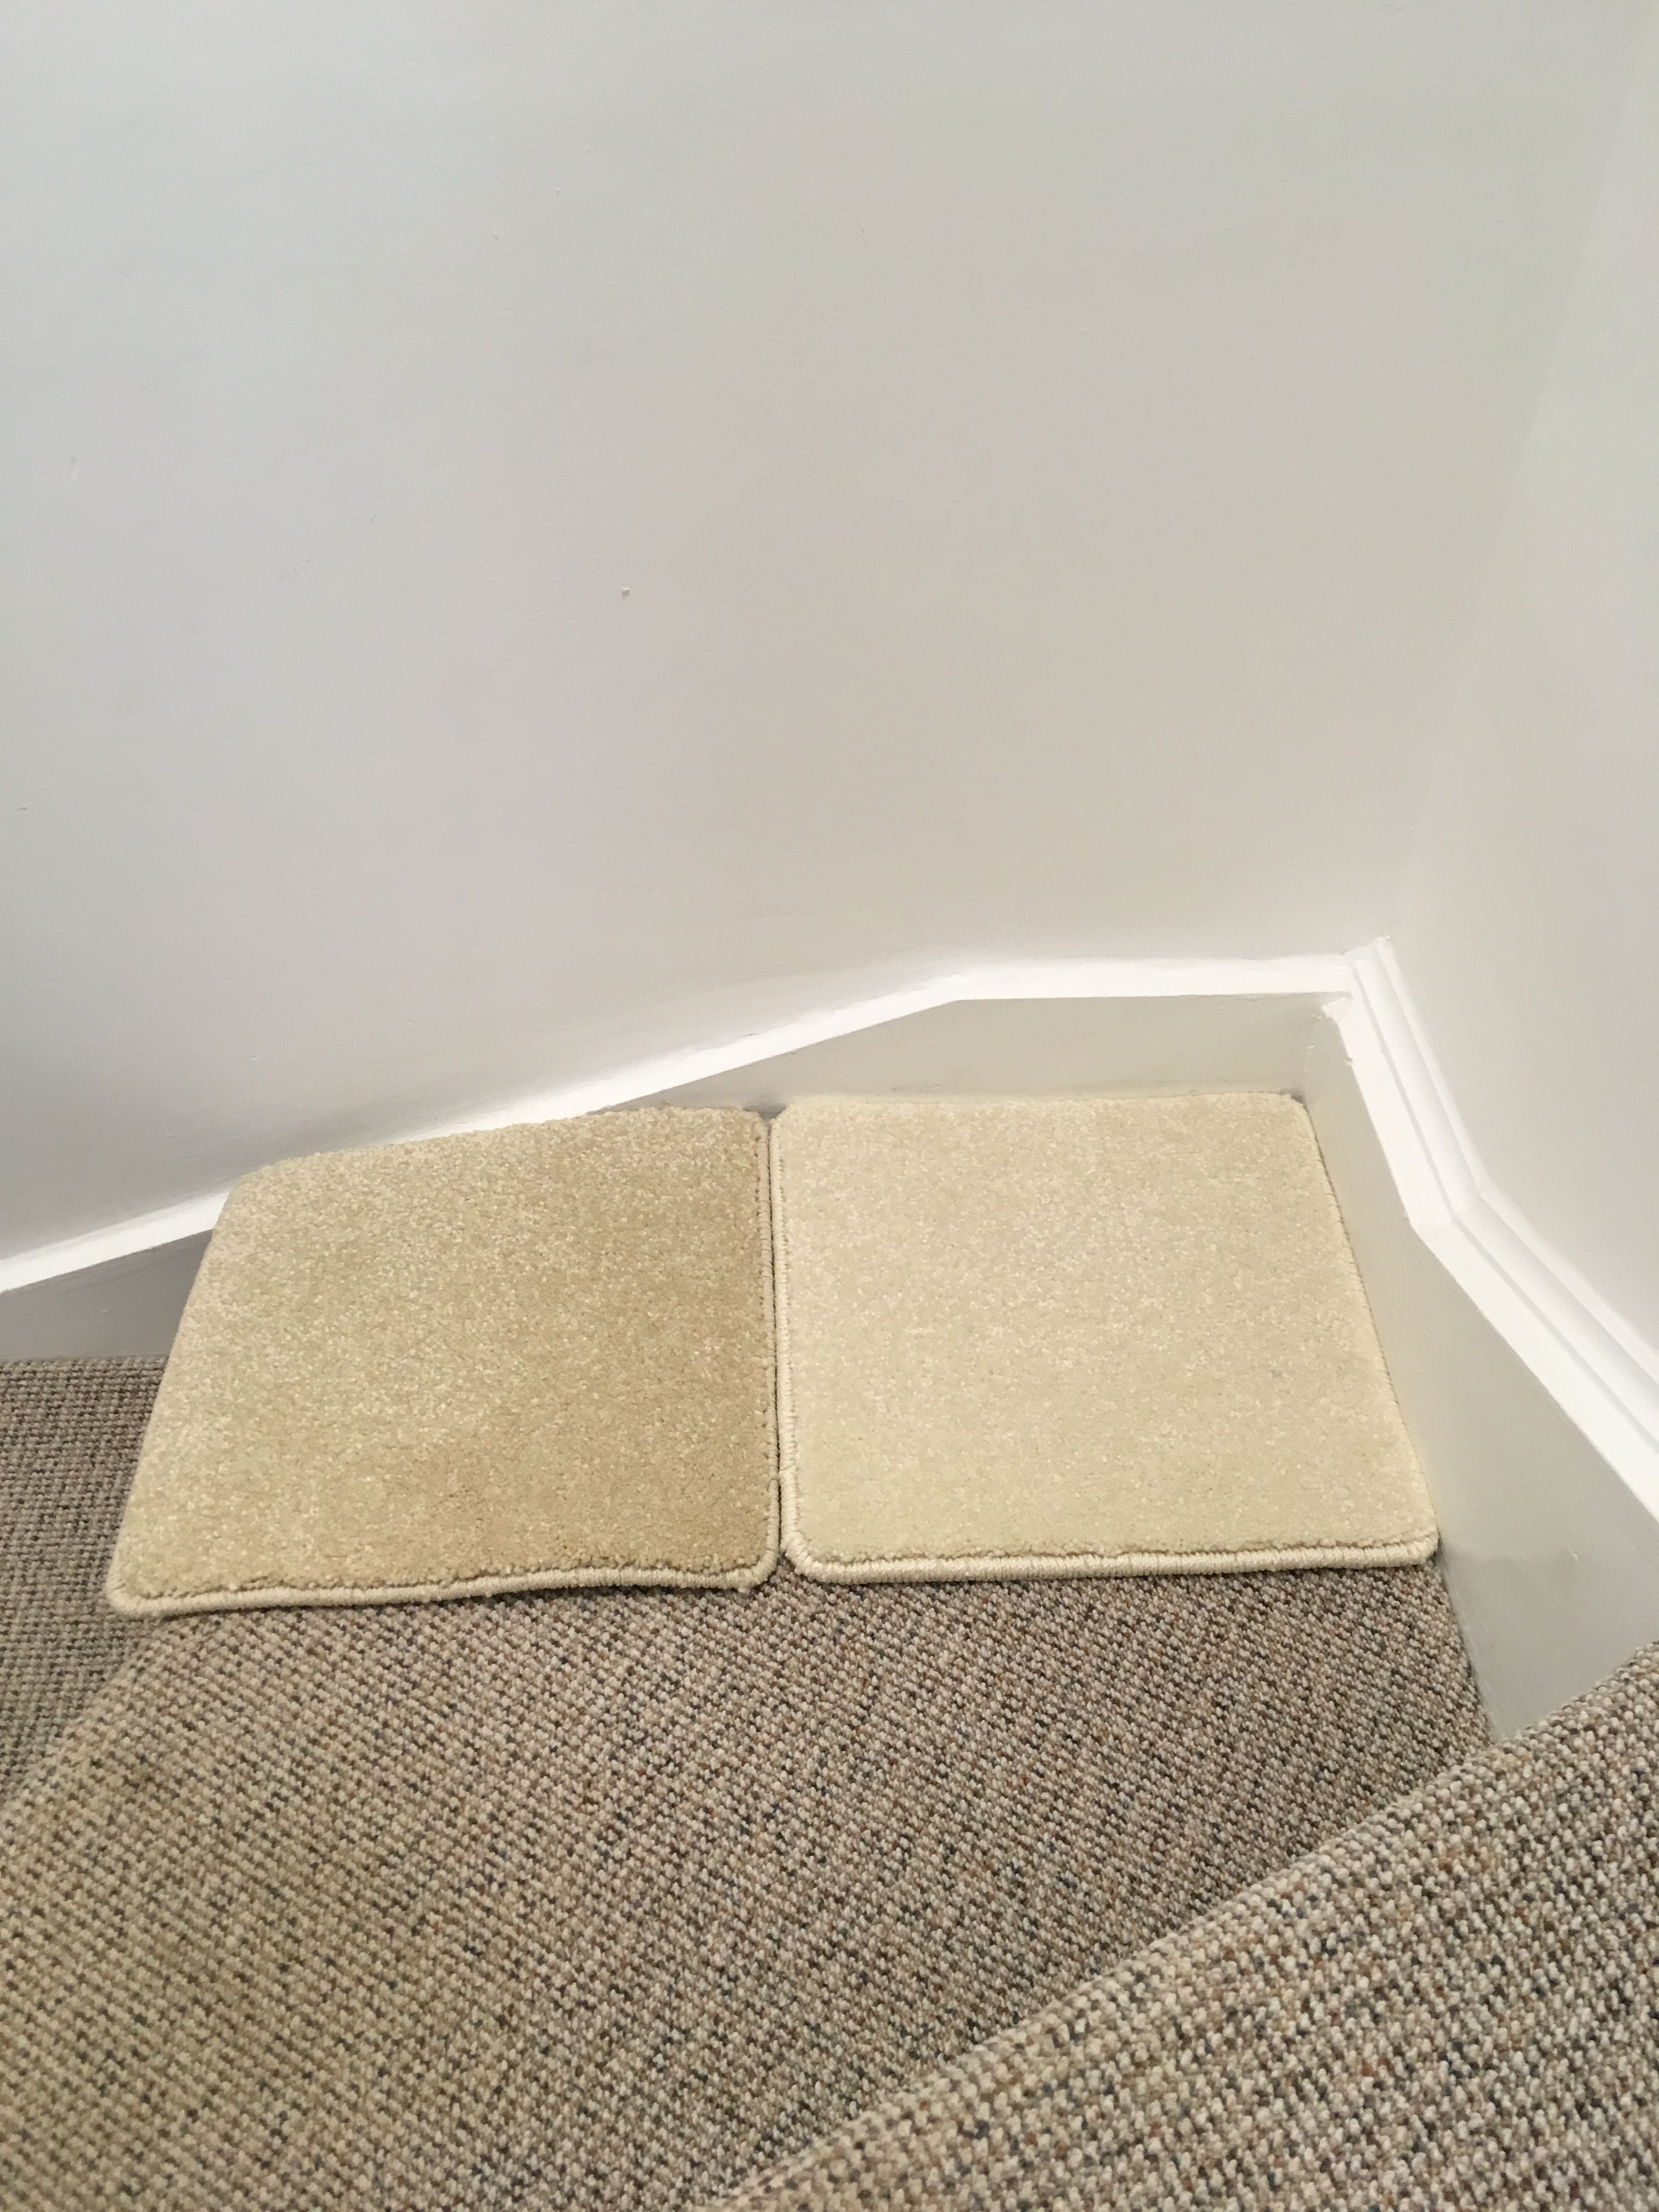 Taylor Wimpey Carpet Options New Homes Taylor Wimpey